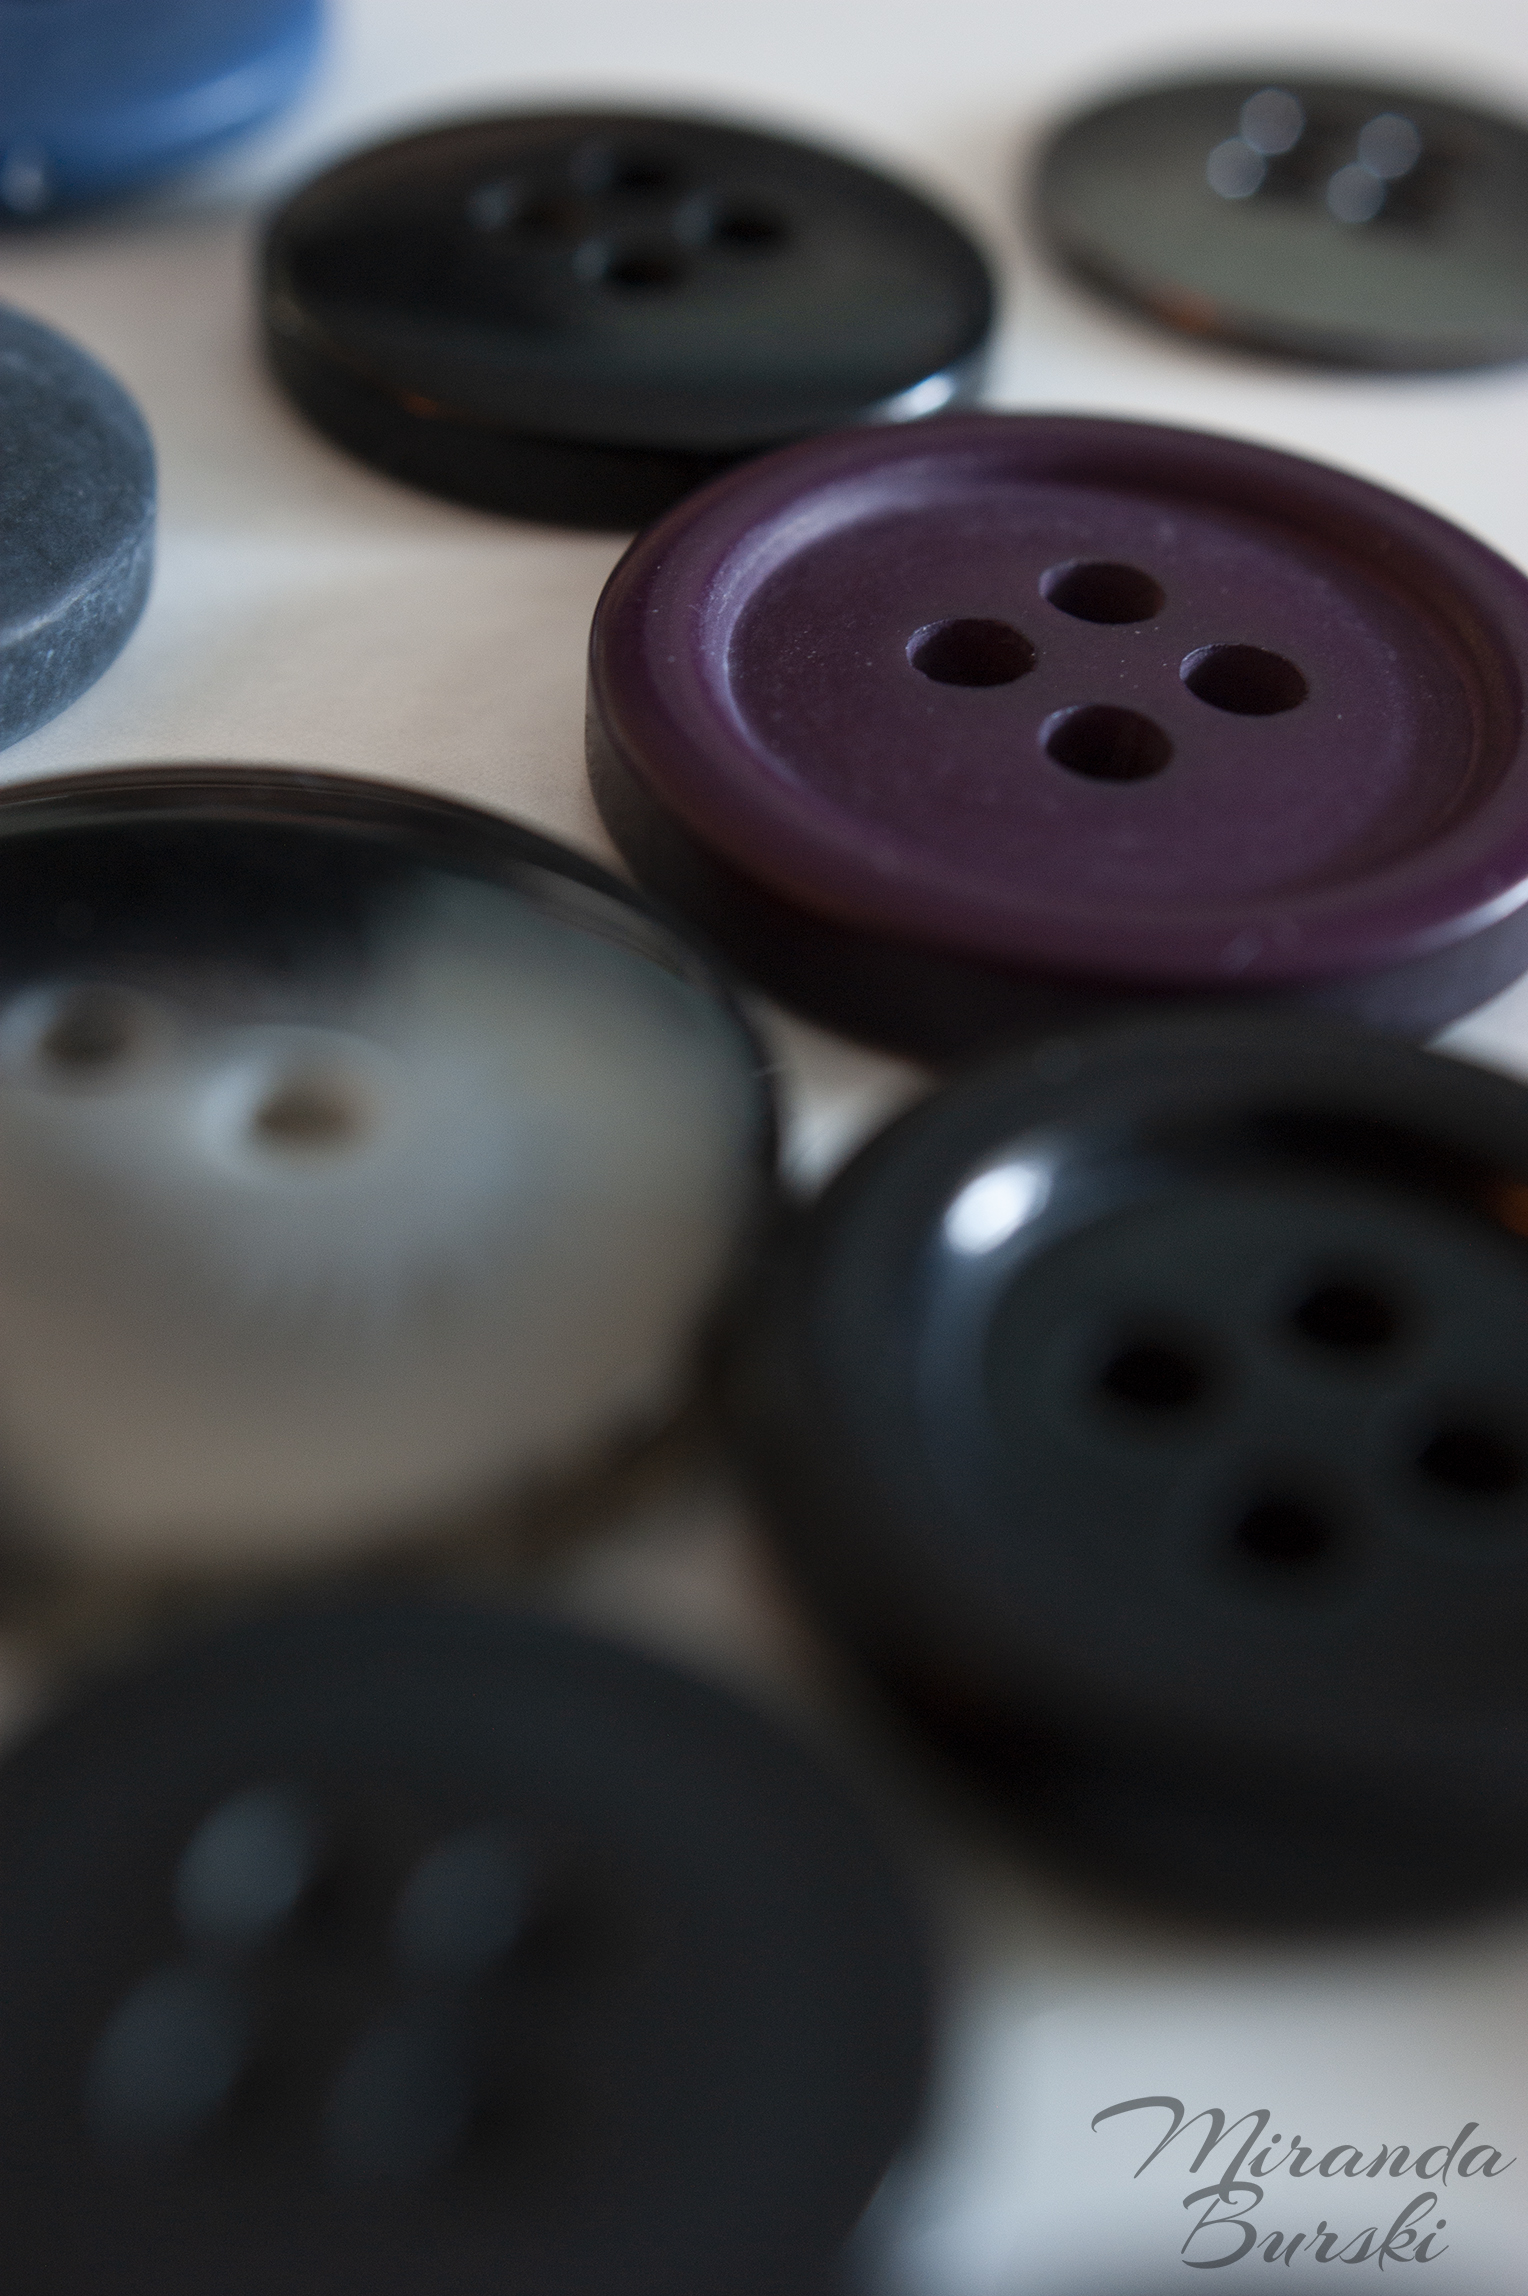 A collection of buttons of various colours.